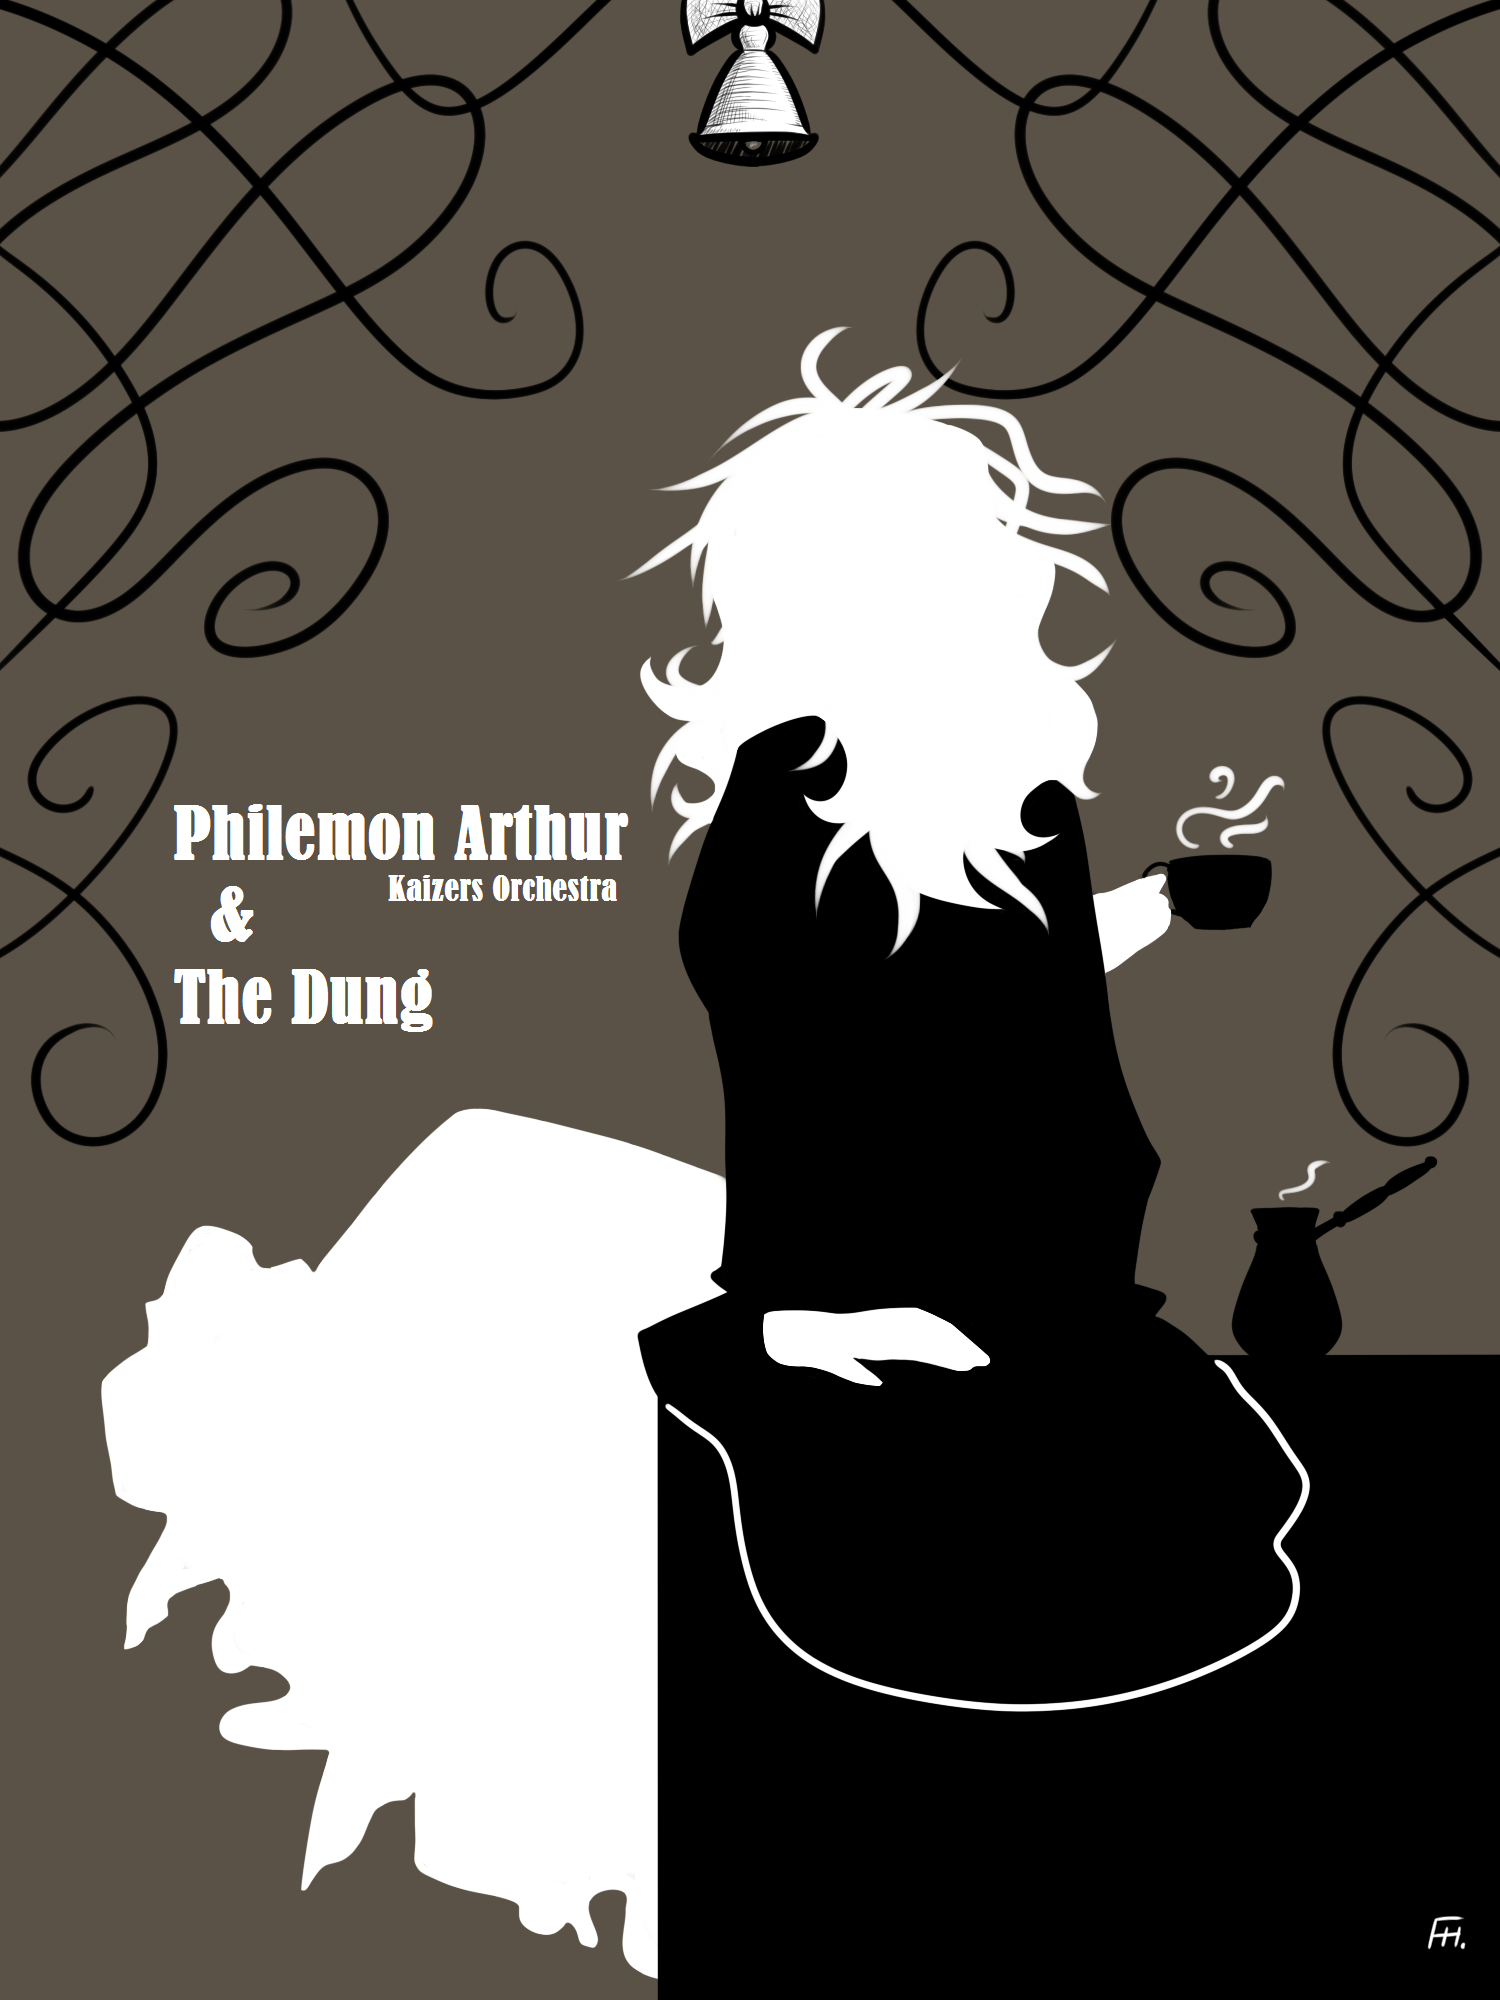 Kaizers Orchestra - Philemon Arthur and The Dung by Virtue147